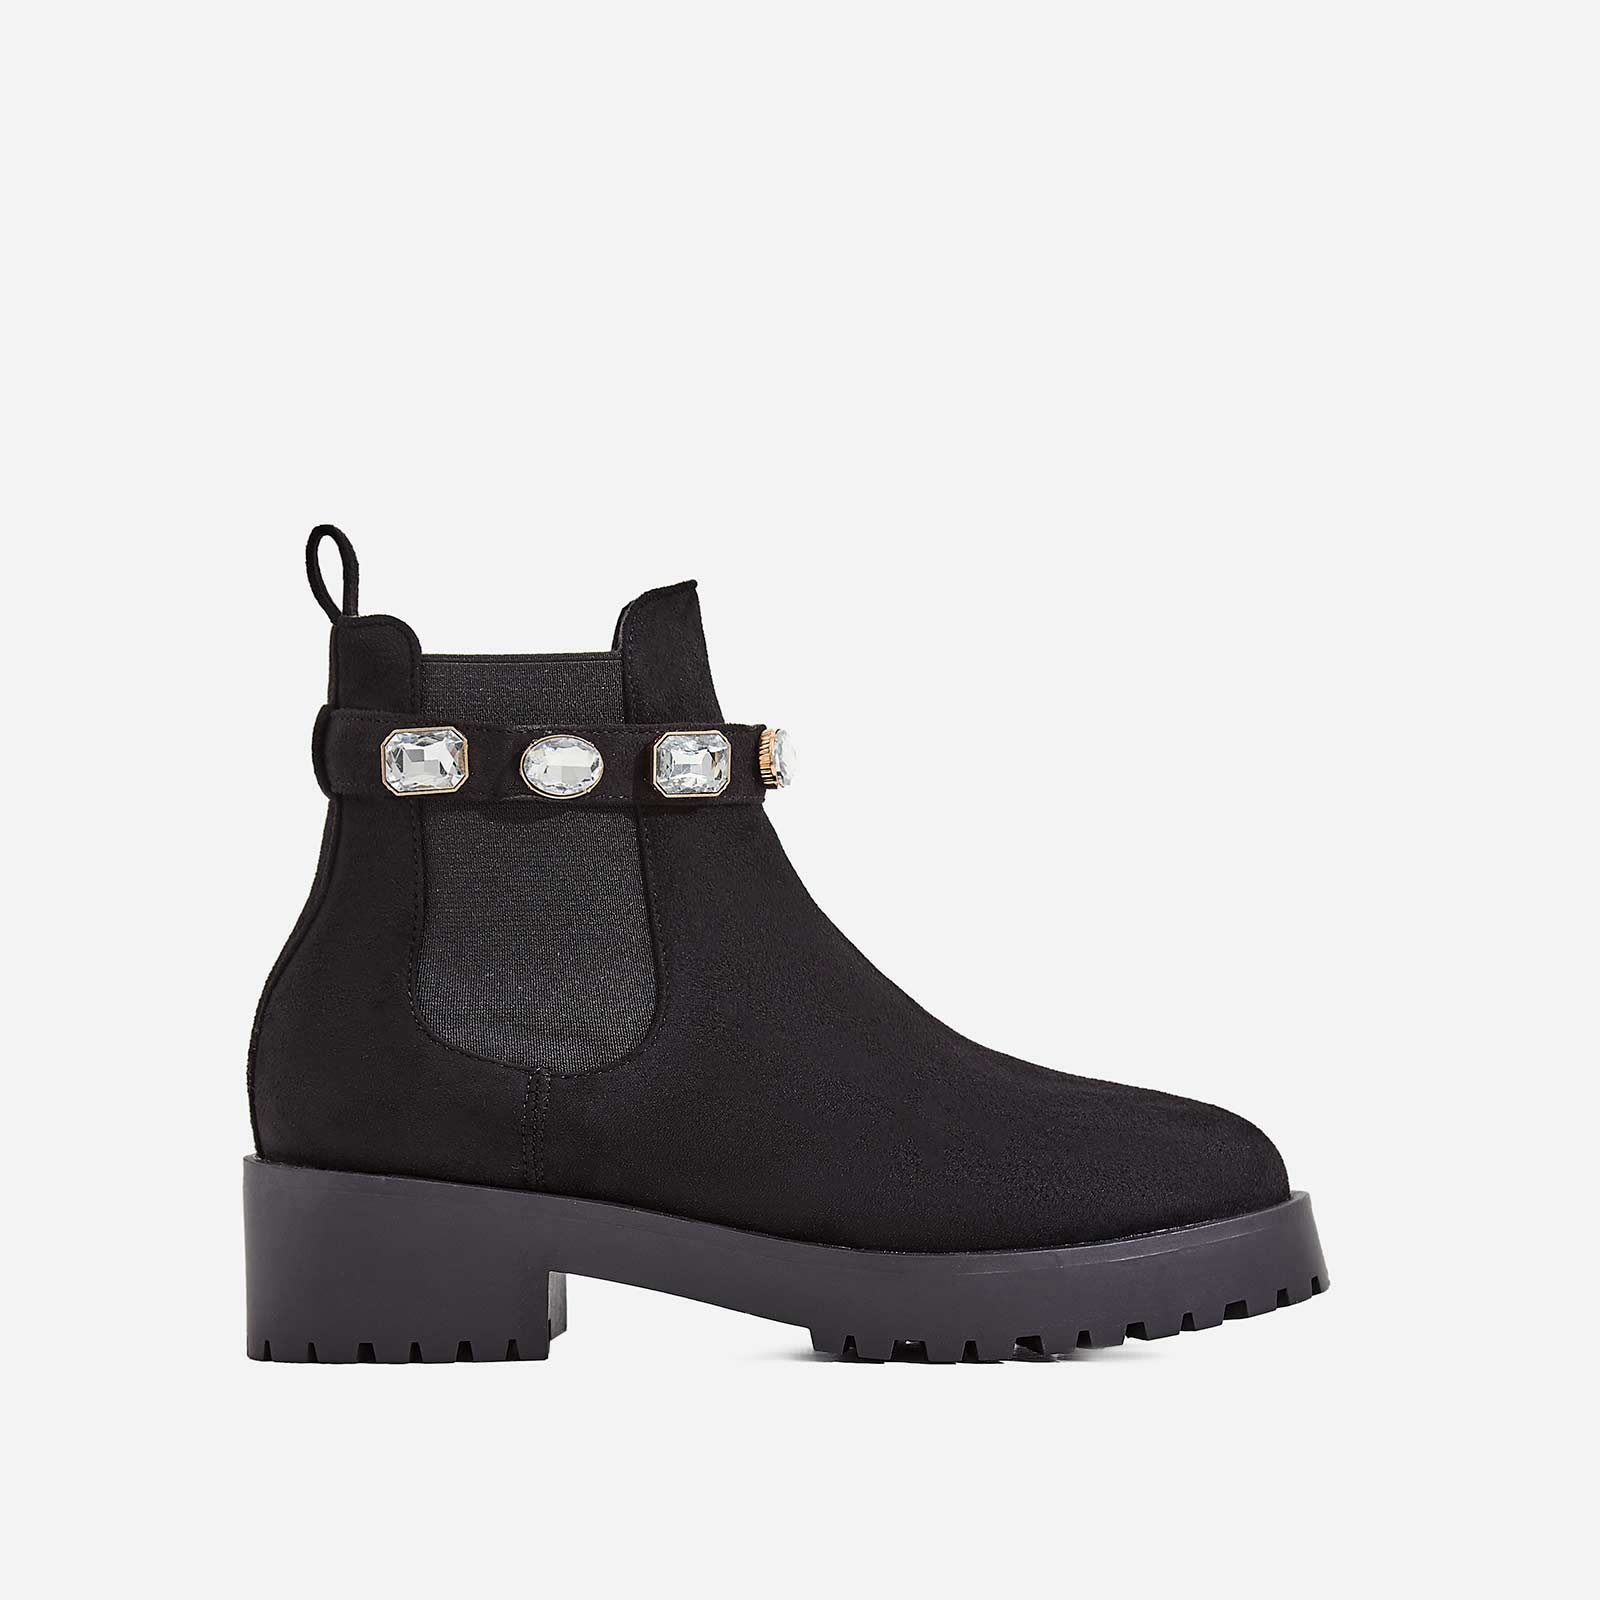 Gem Jewel Detail Strap Ankle Biker Boot In Black Faux Suede